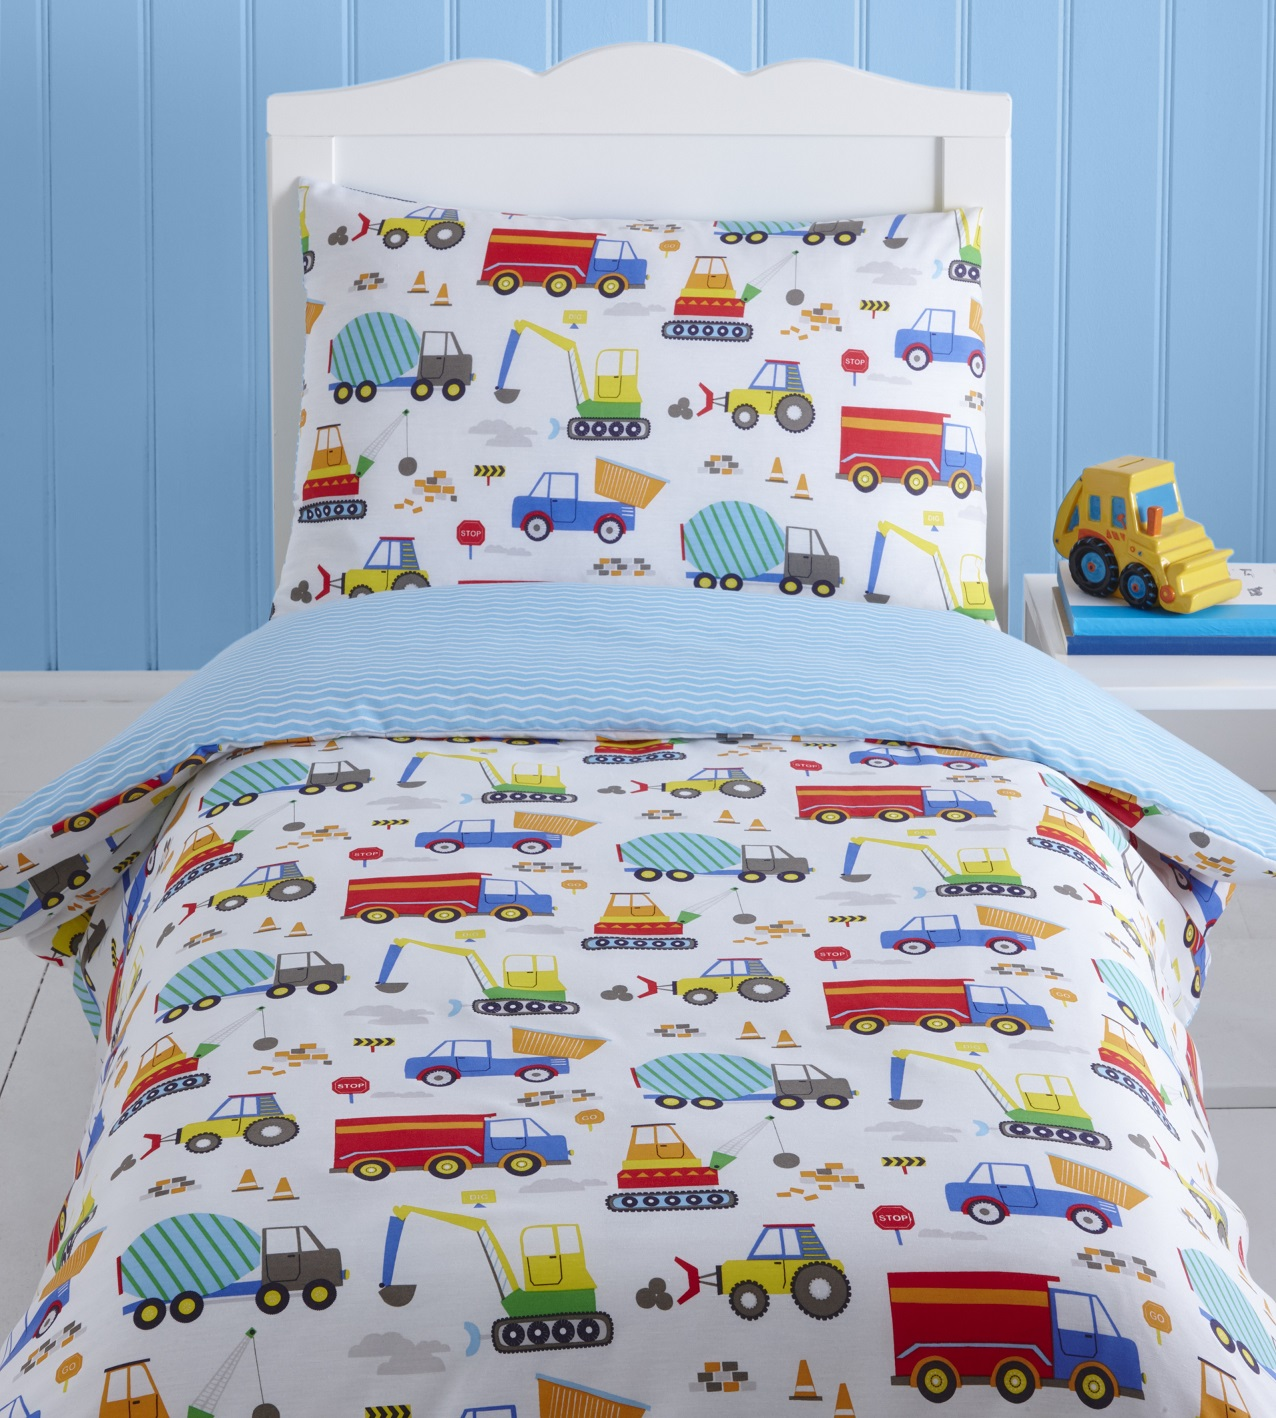 2 Persoons Dekbedovertrek Bright Trucks Baby Boy Kids Toddler Junior Cot Bed Duvet